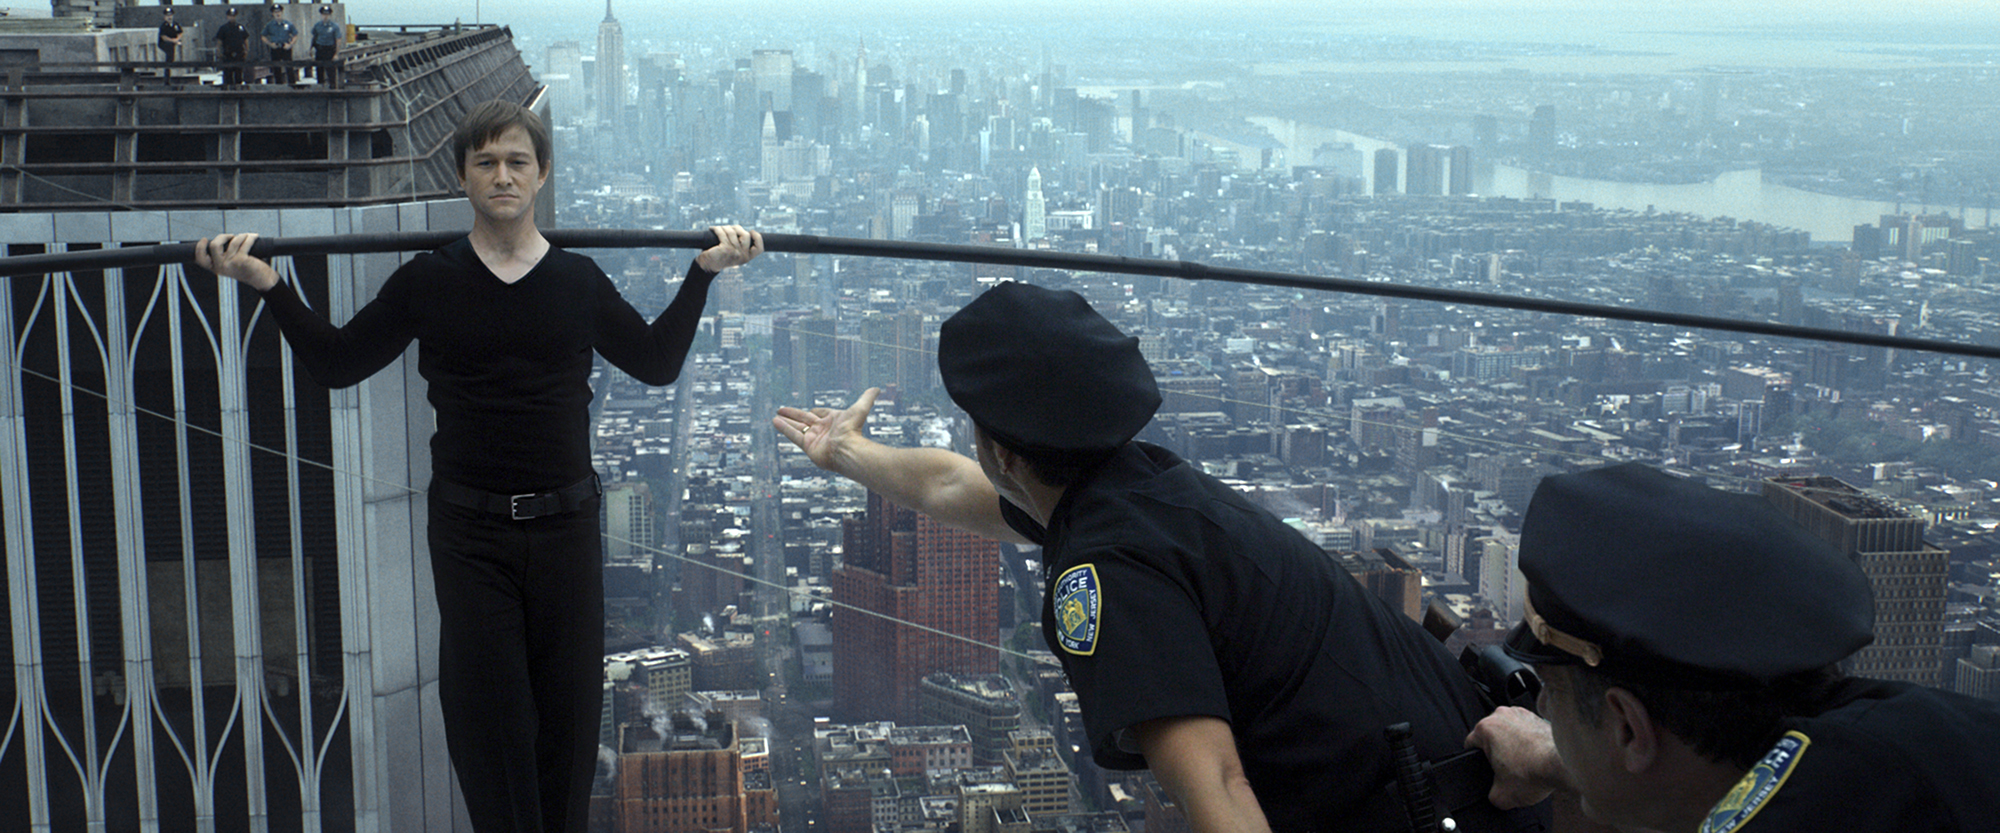 Max Payne 2 The Fall Of Max Payne Wallpaper The Real Story Behind Philippe Petit S High Wire Act In